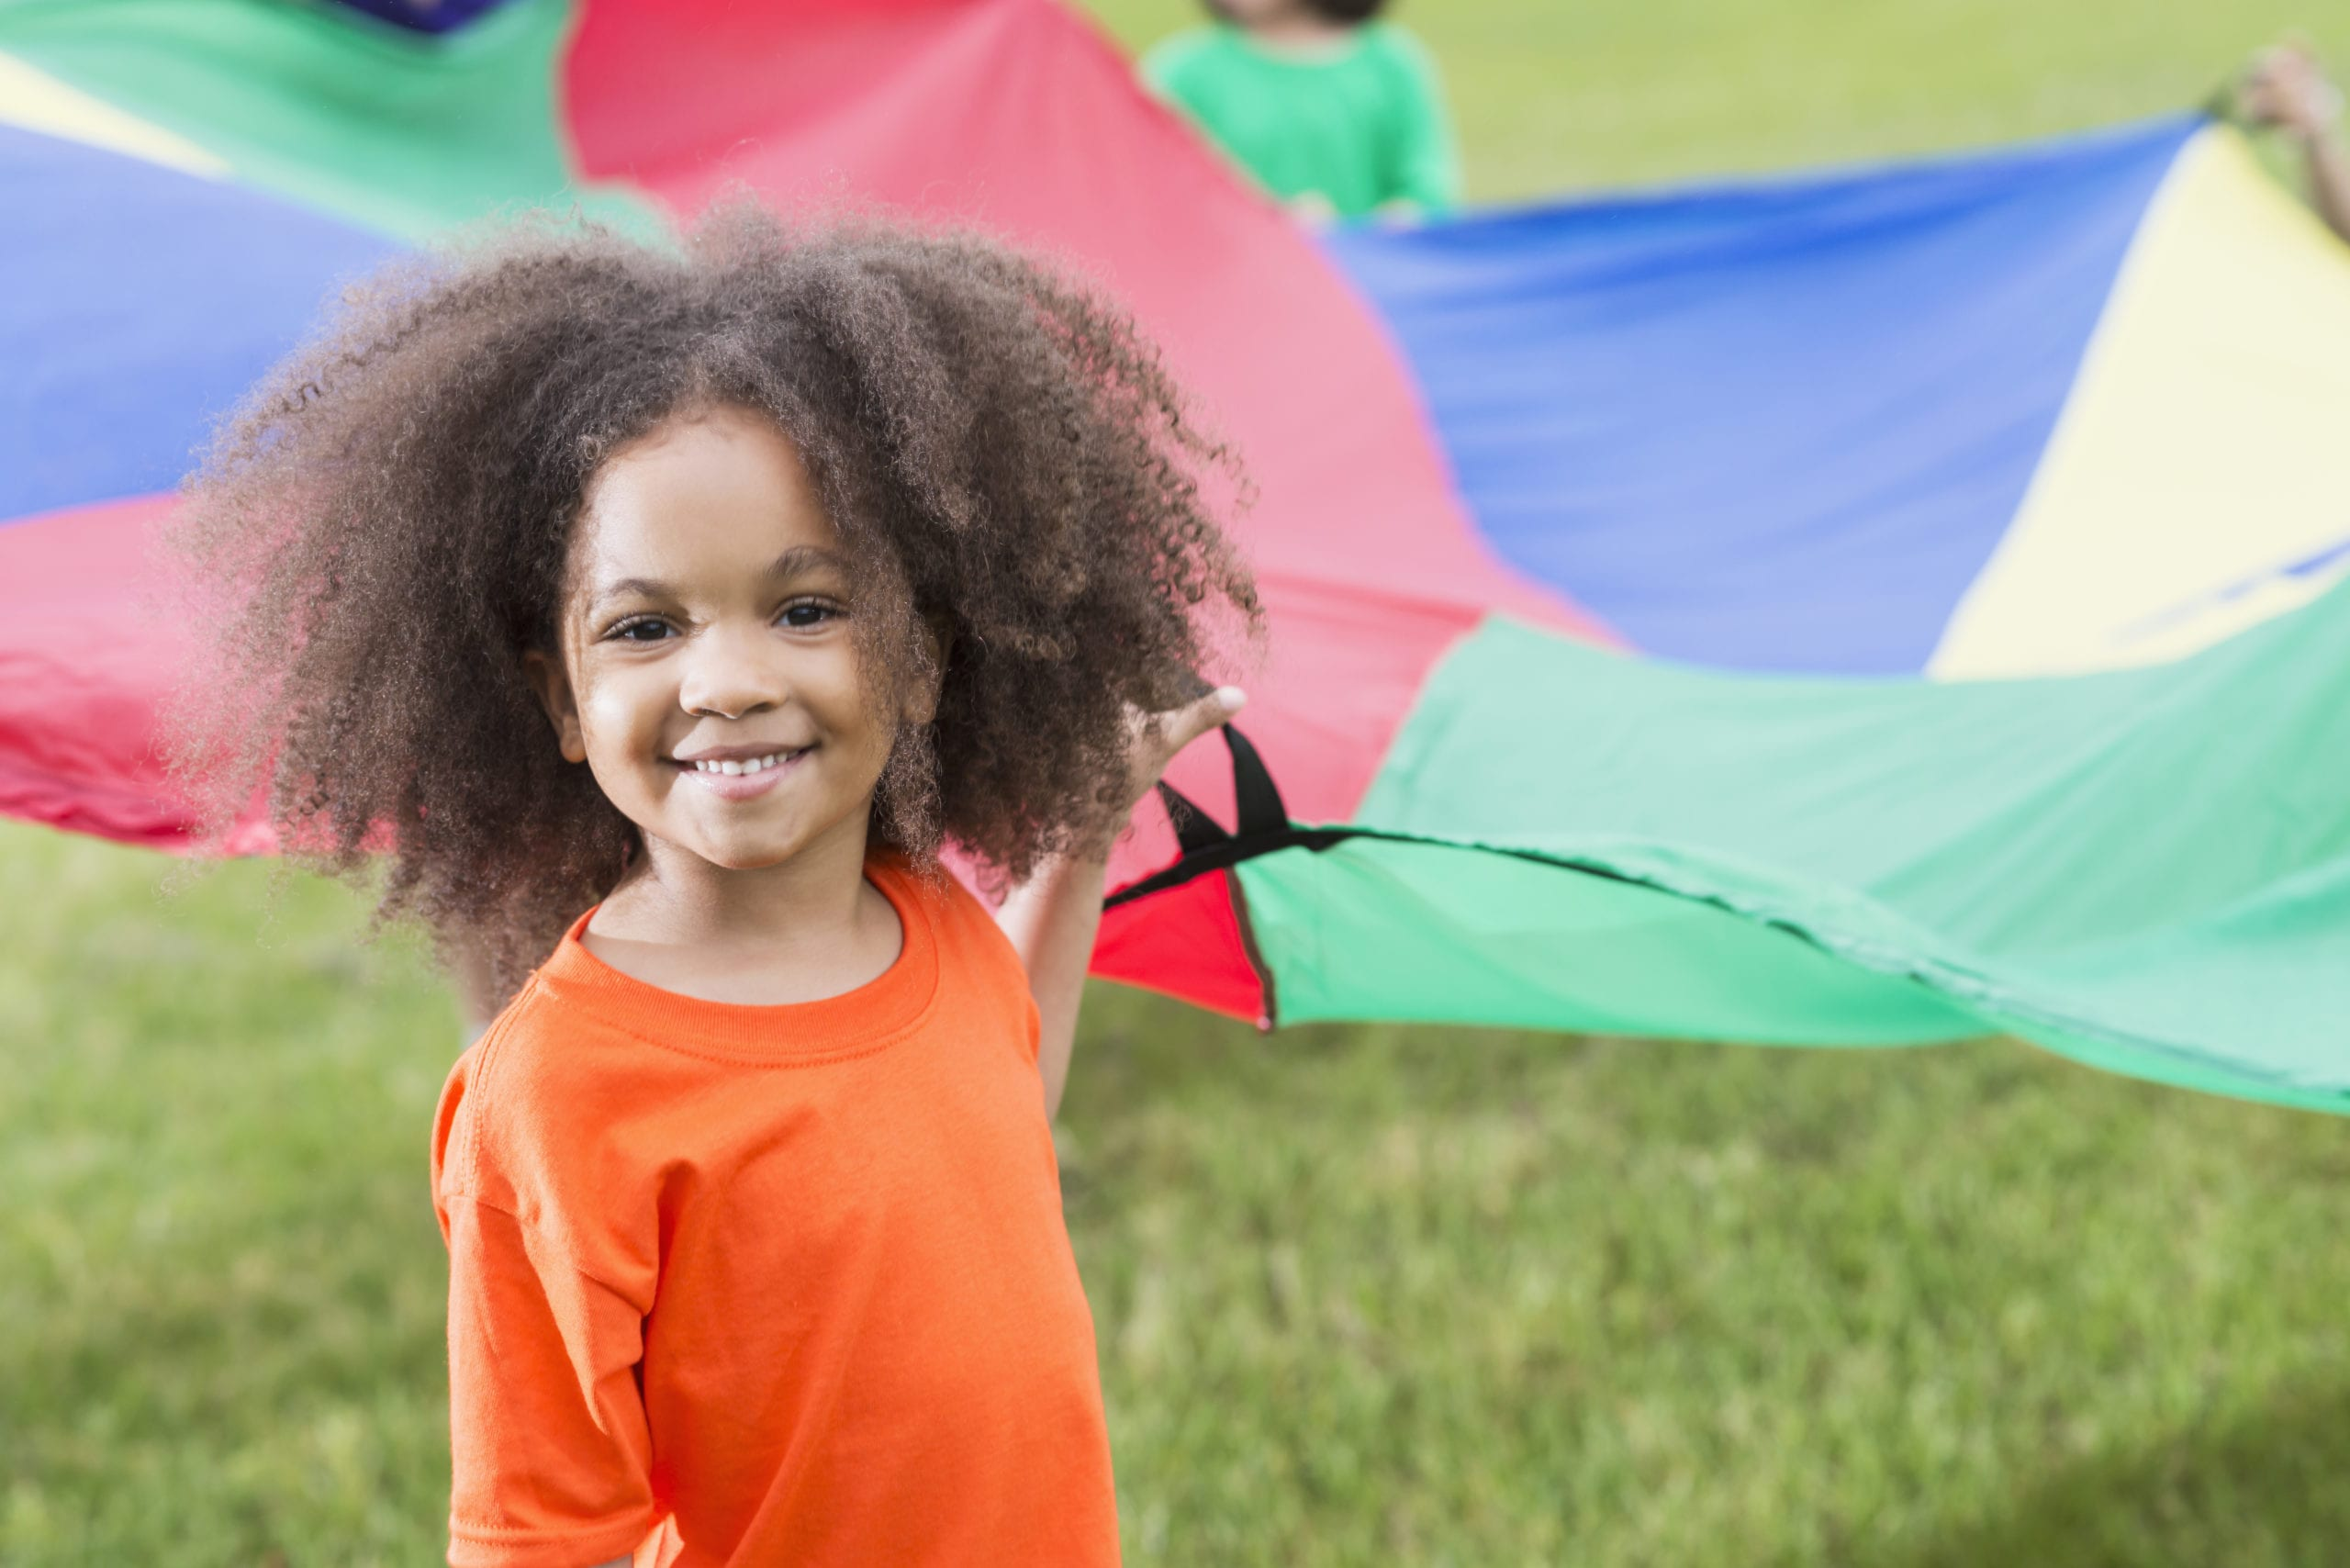 Parent & Me: Ages 6 months - 3 yrs - RWJ RAHWAY FITNESS & WELLNESS AT CARTERET